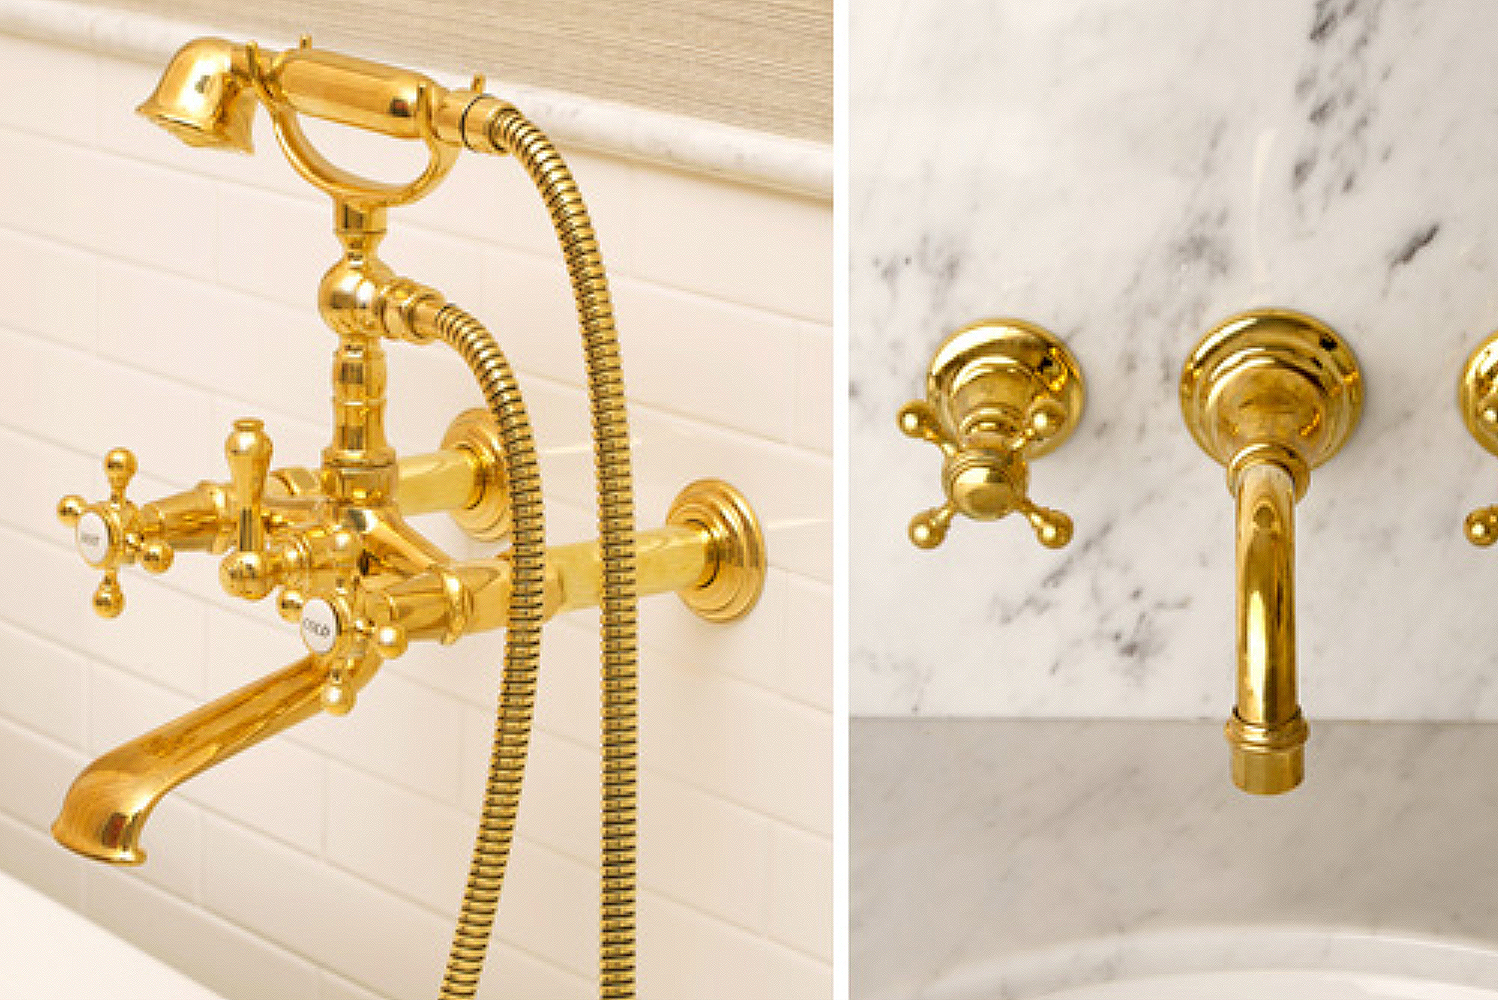 Golden appeal: Victoria lavatory faucet and Chesterfield tub filler ...